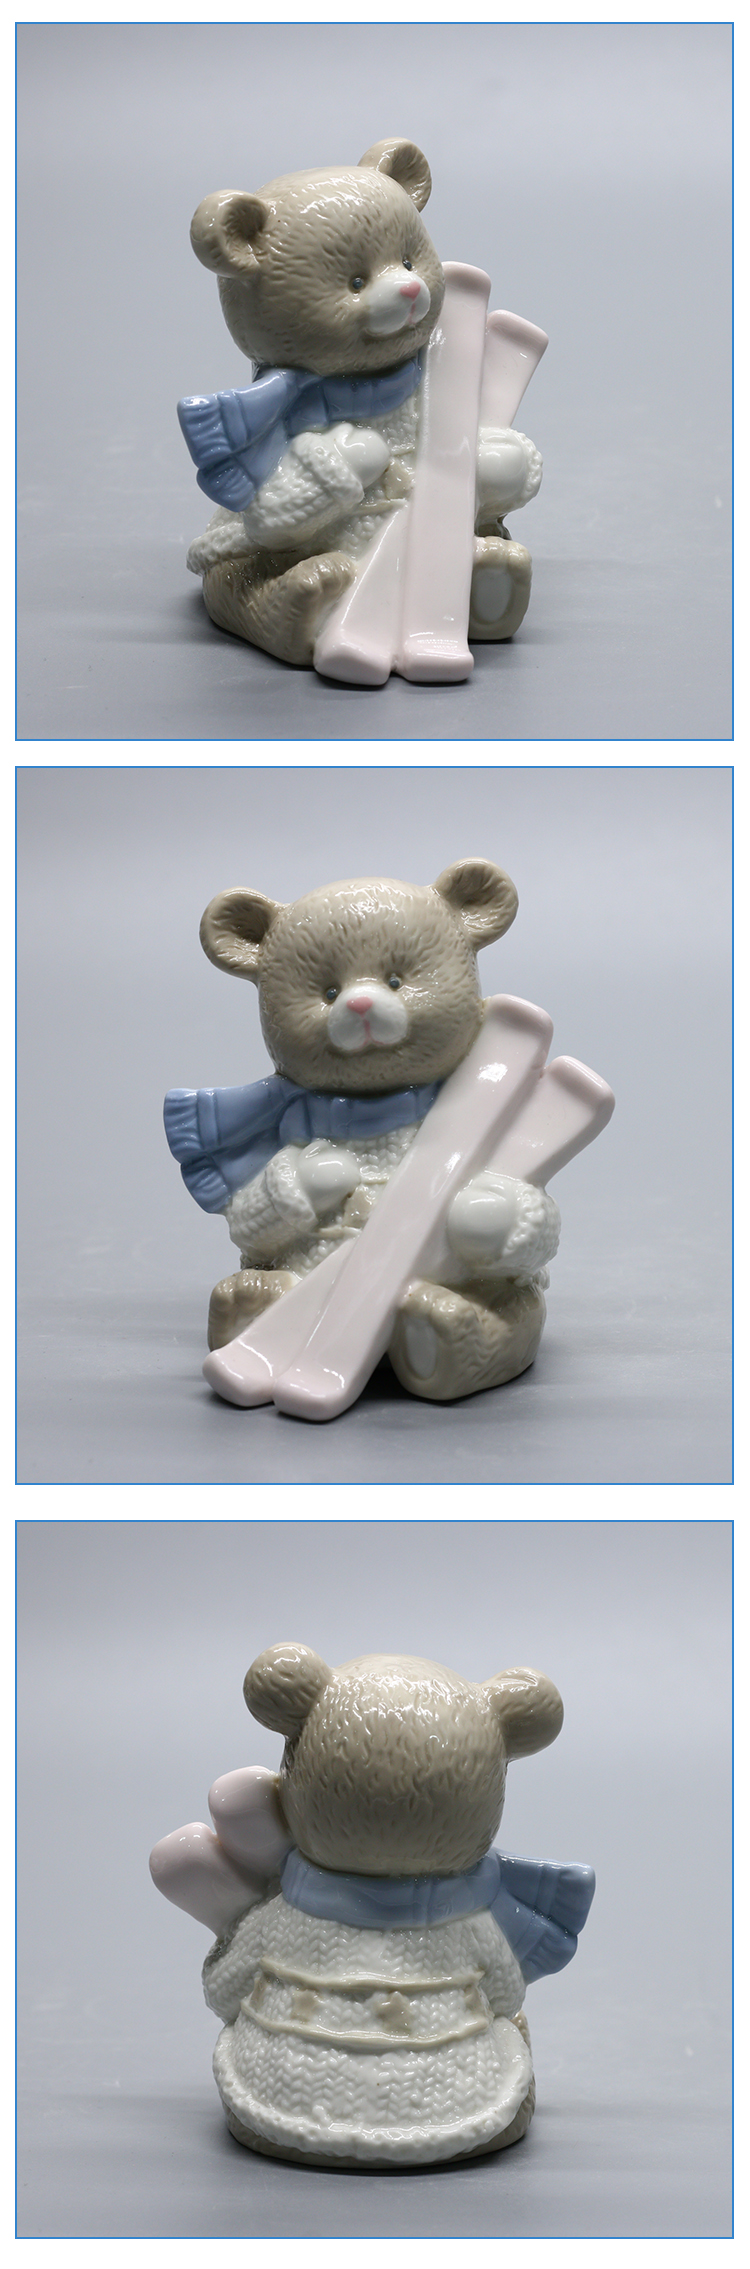 ceramic gift items bear desgin craft small statue